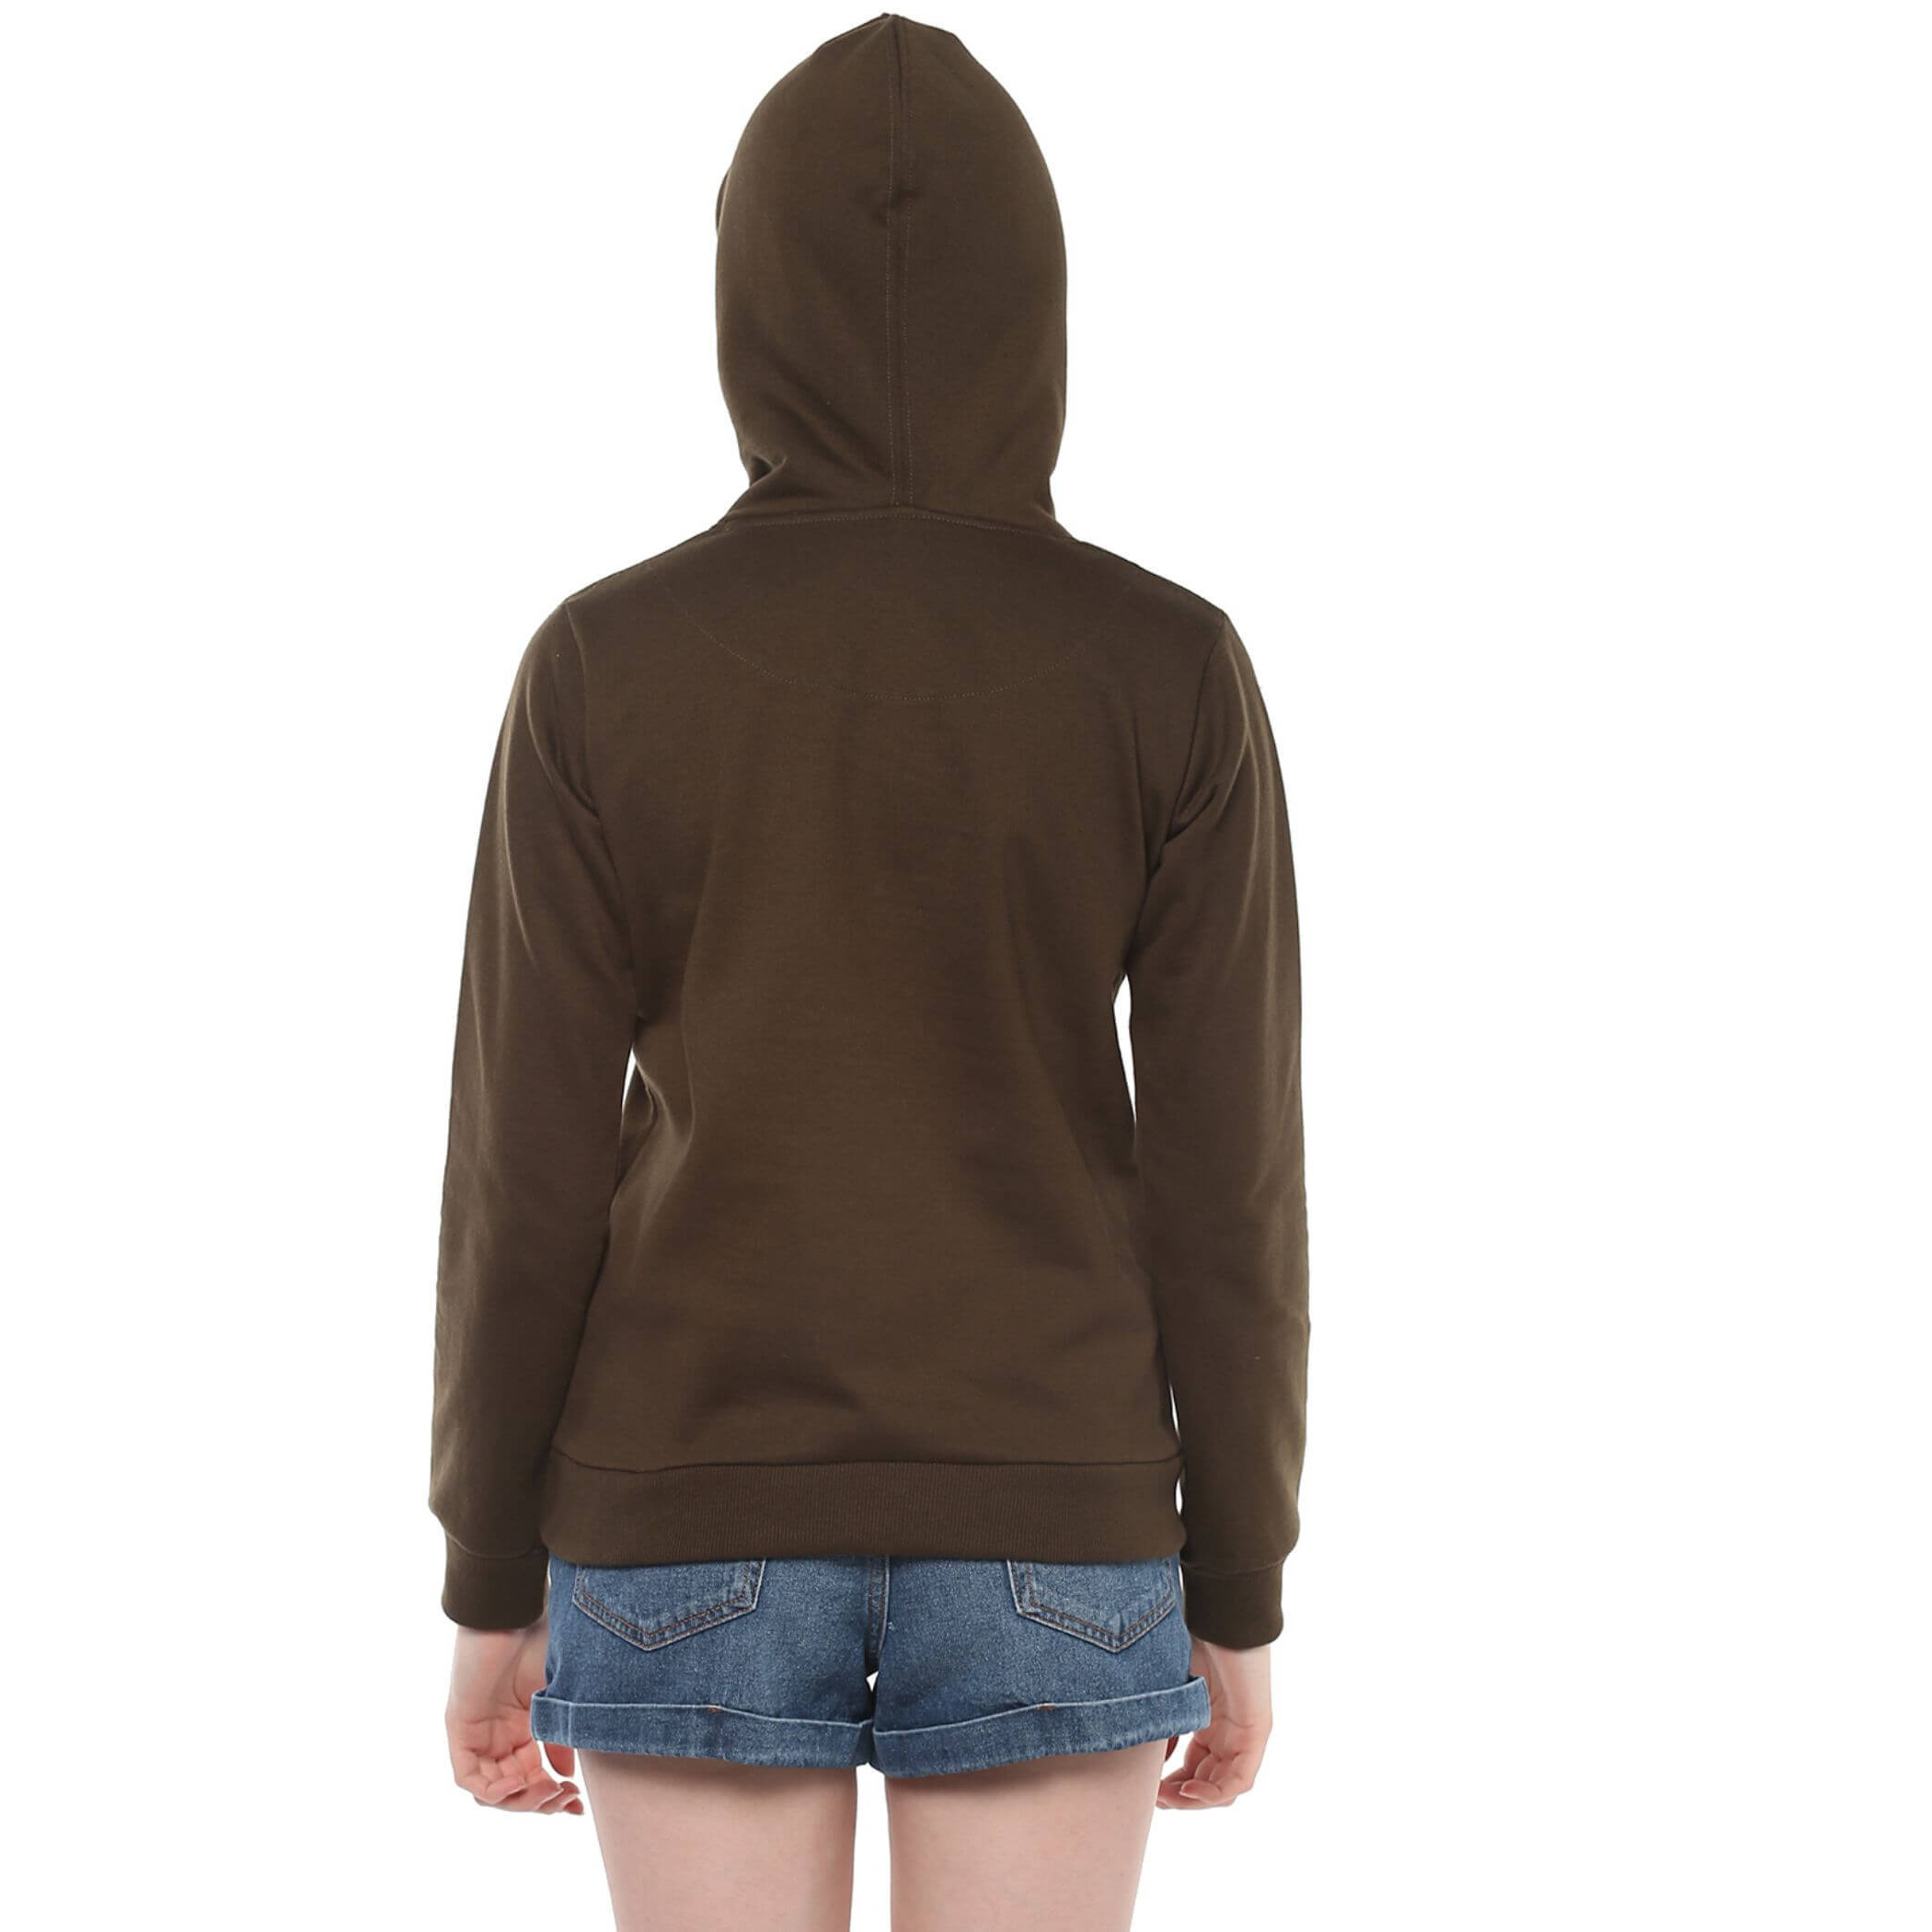 Fur Lined Hooded Sweatshirt With Chest Print And Front Pockets